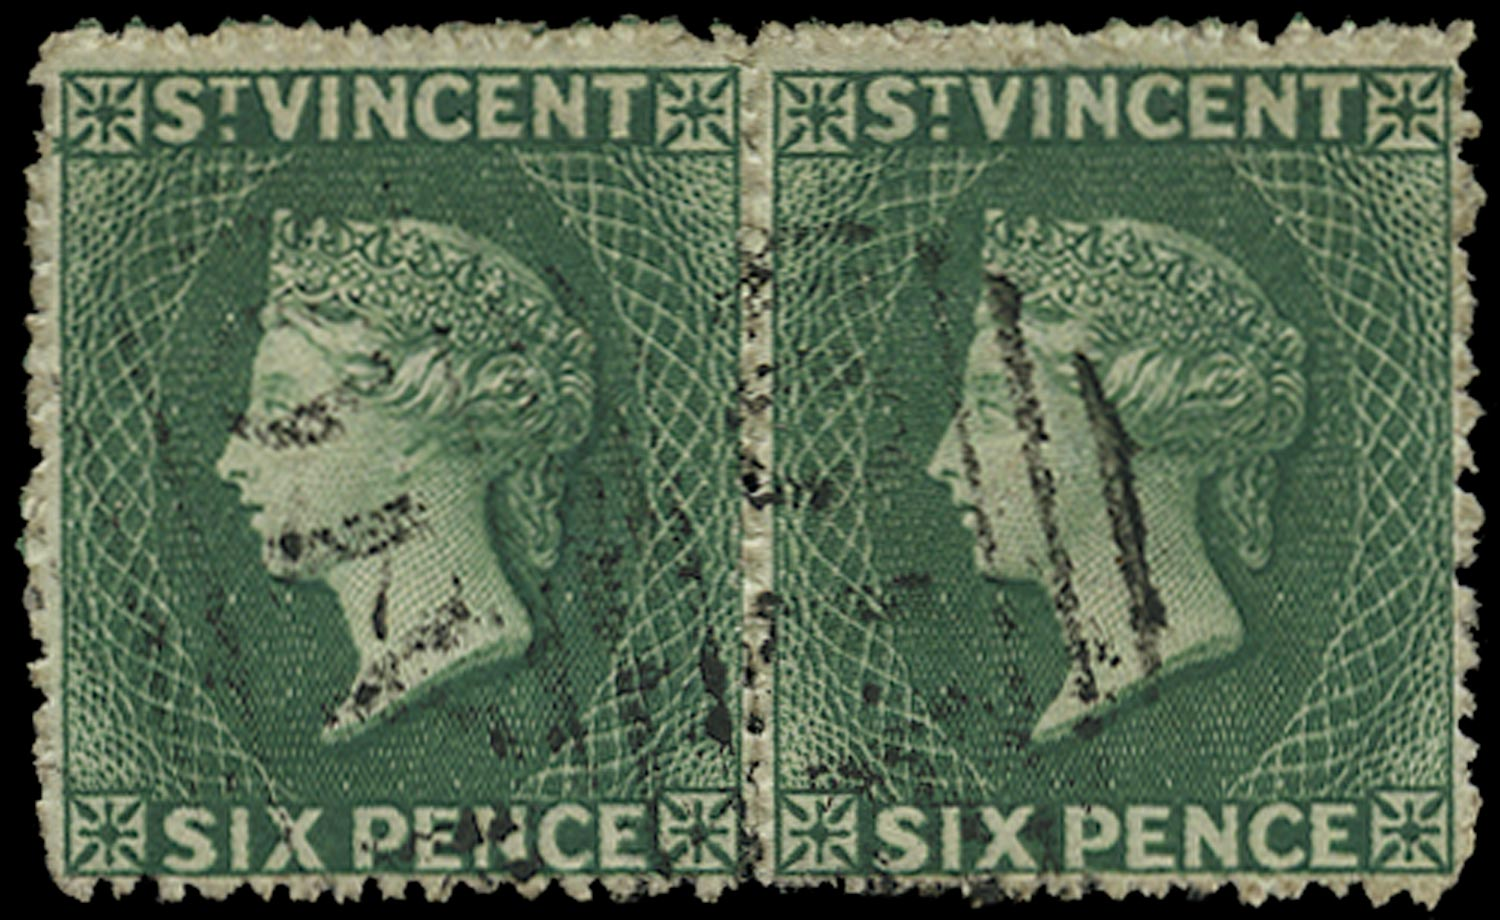 ST VINCENT 1871  SG16 Used 6d deep green watermark small star upright